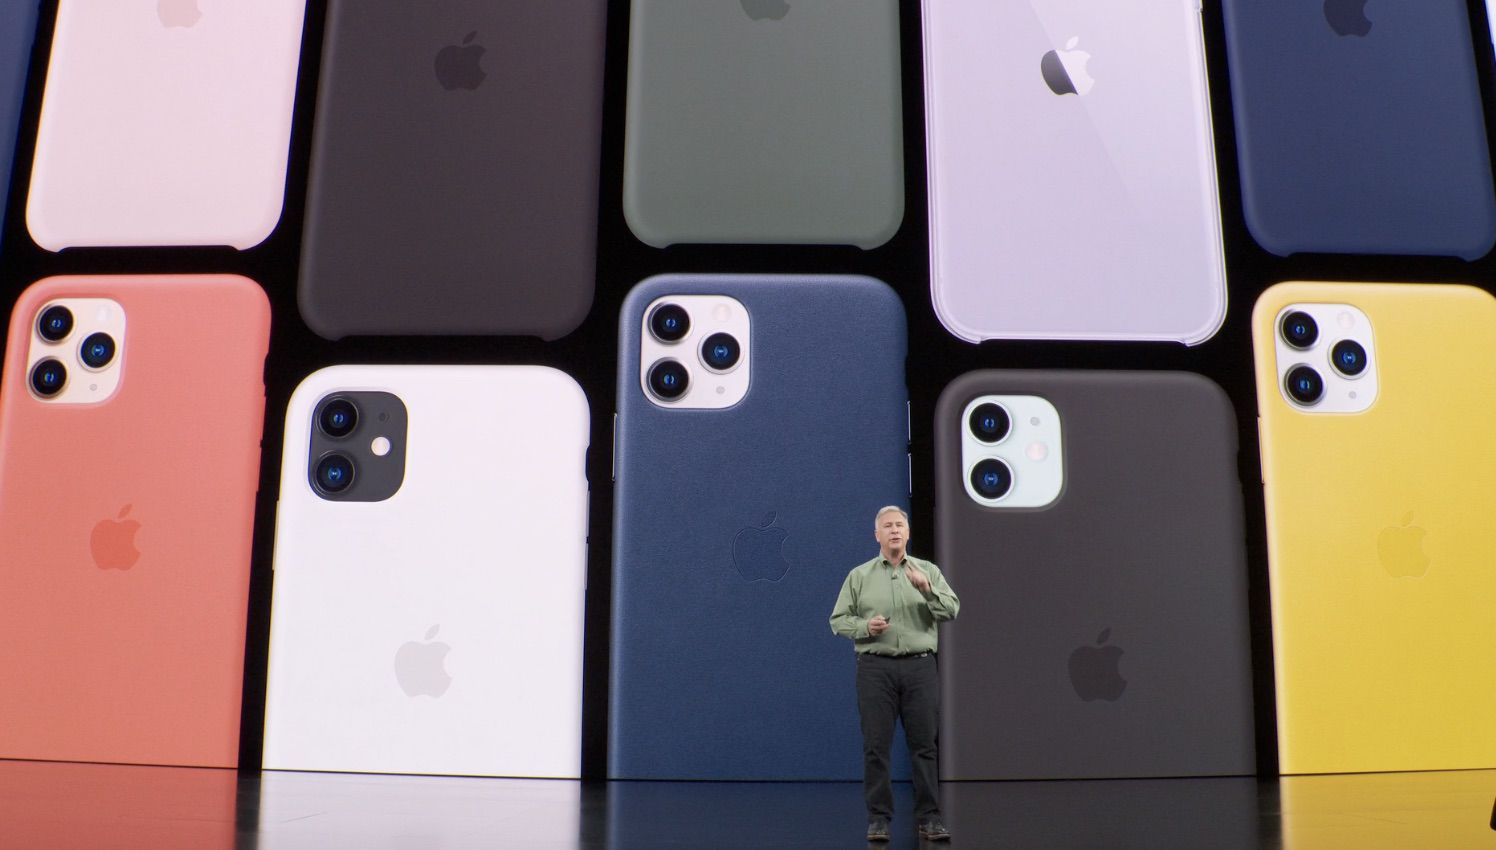 Lancement de l'iPhone 11.